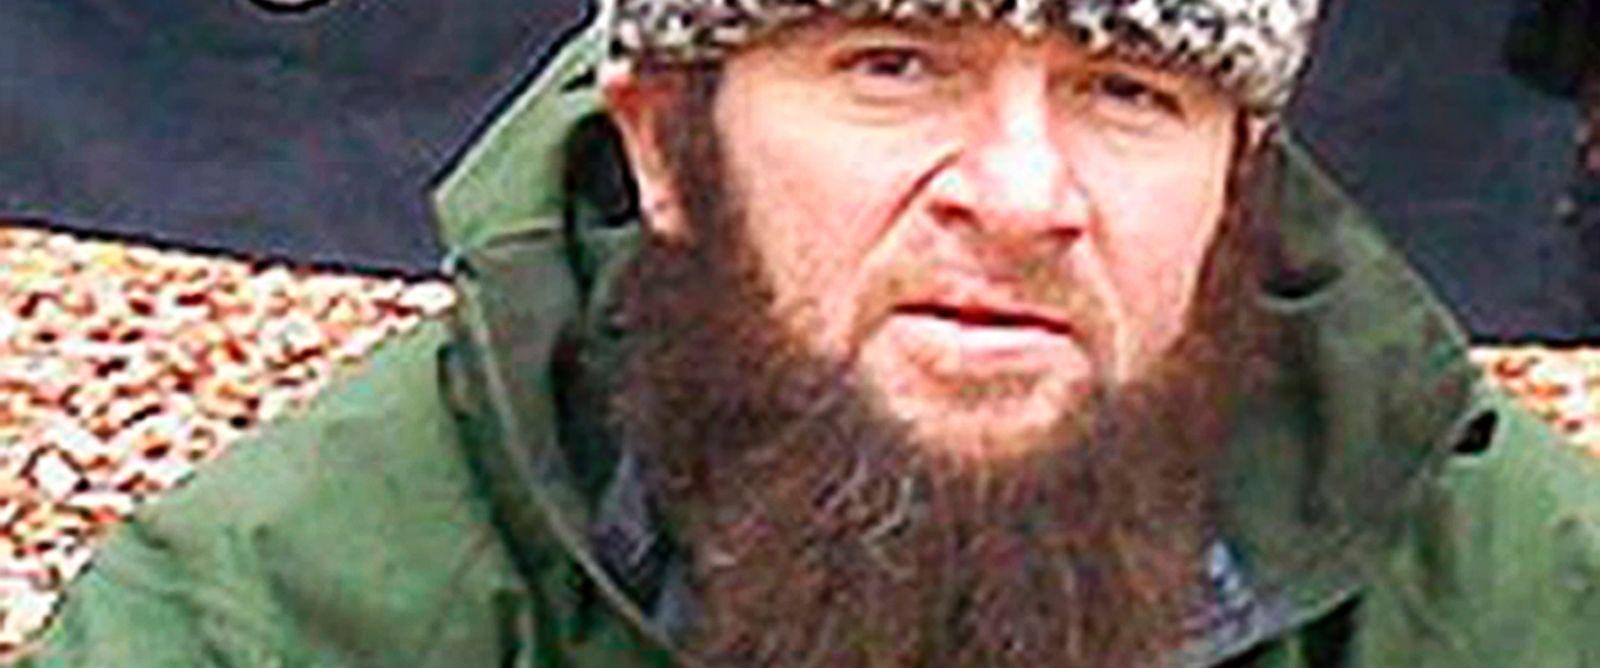 PHOTO: A screenshot from the Kavkazcenter.com website taken Dec. 2, 2009 shows an undated photo of a man identified as Chechen separatist leader Doku Umarov.